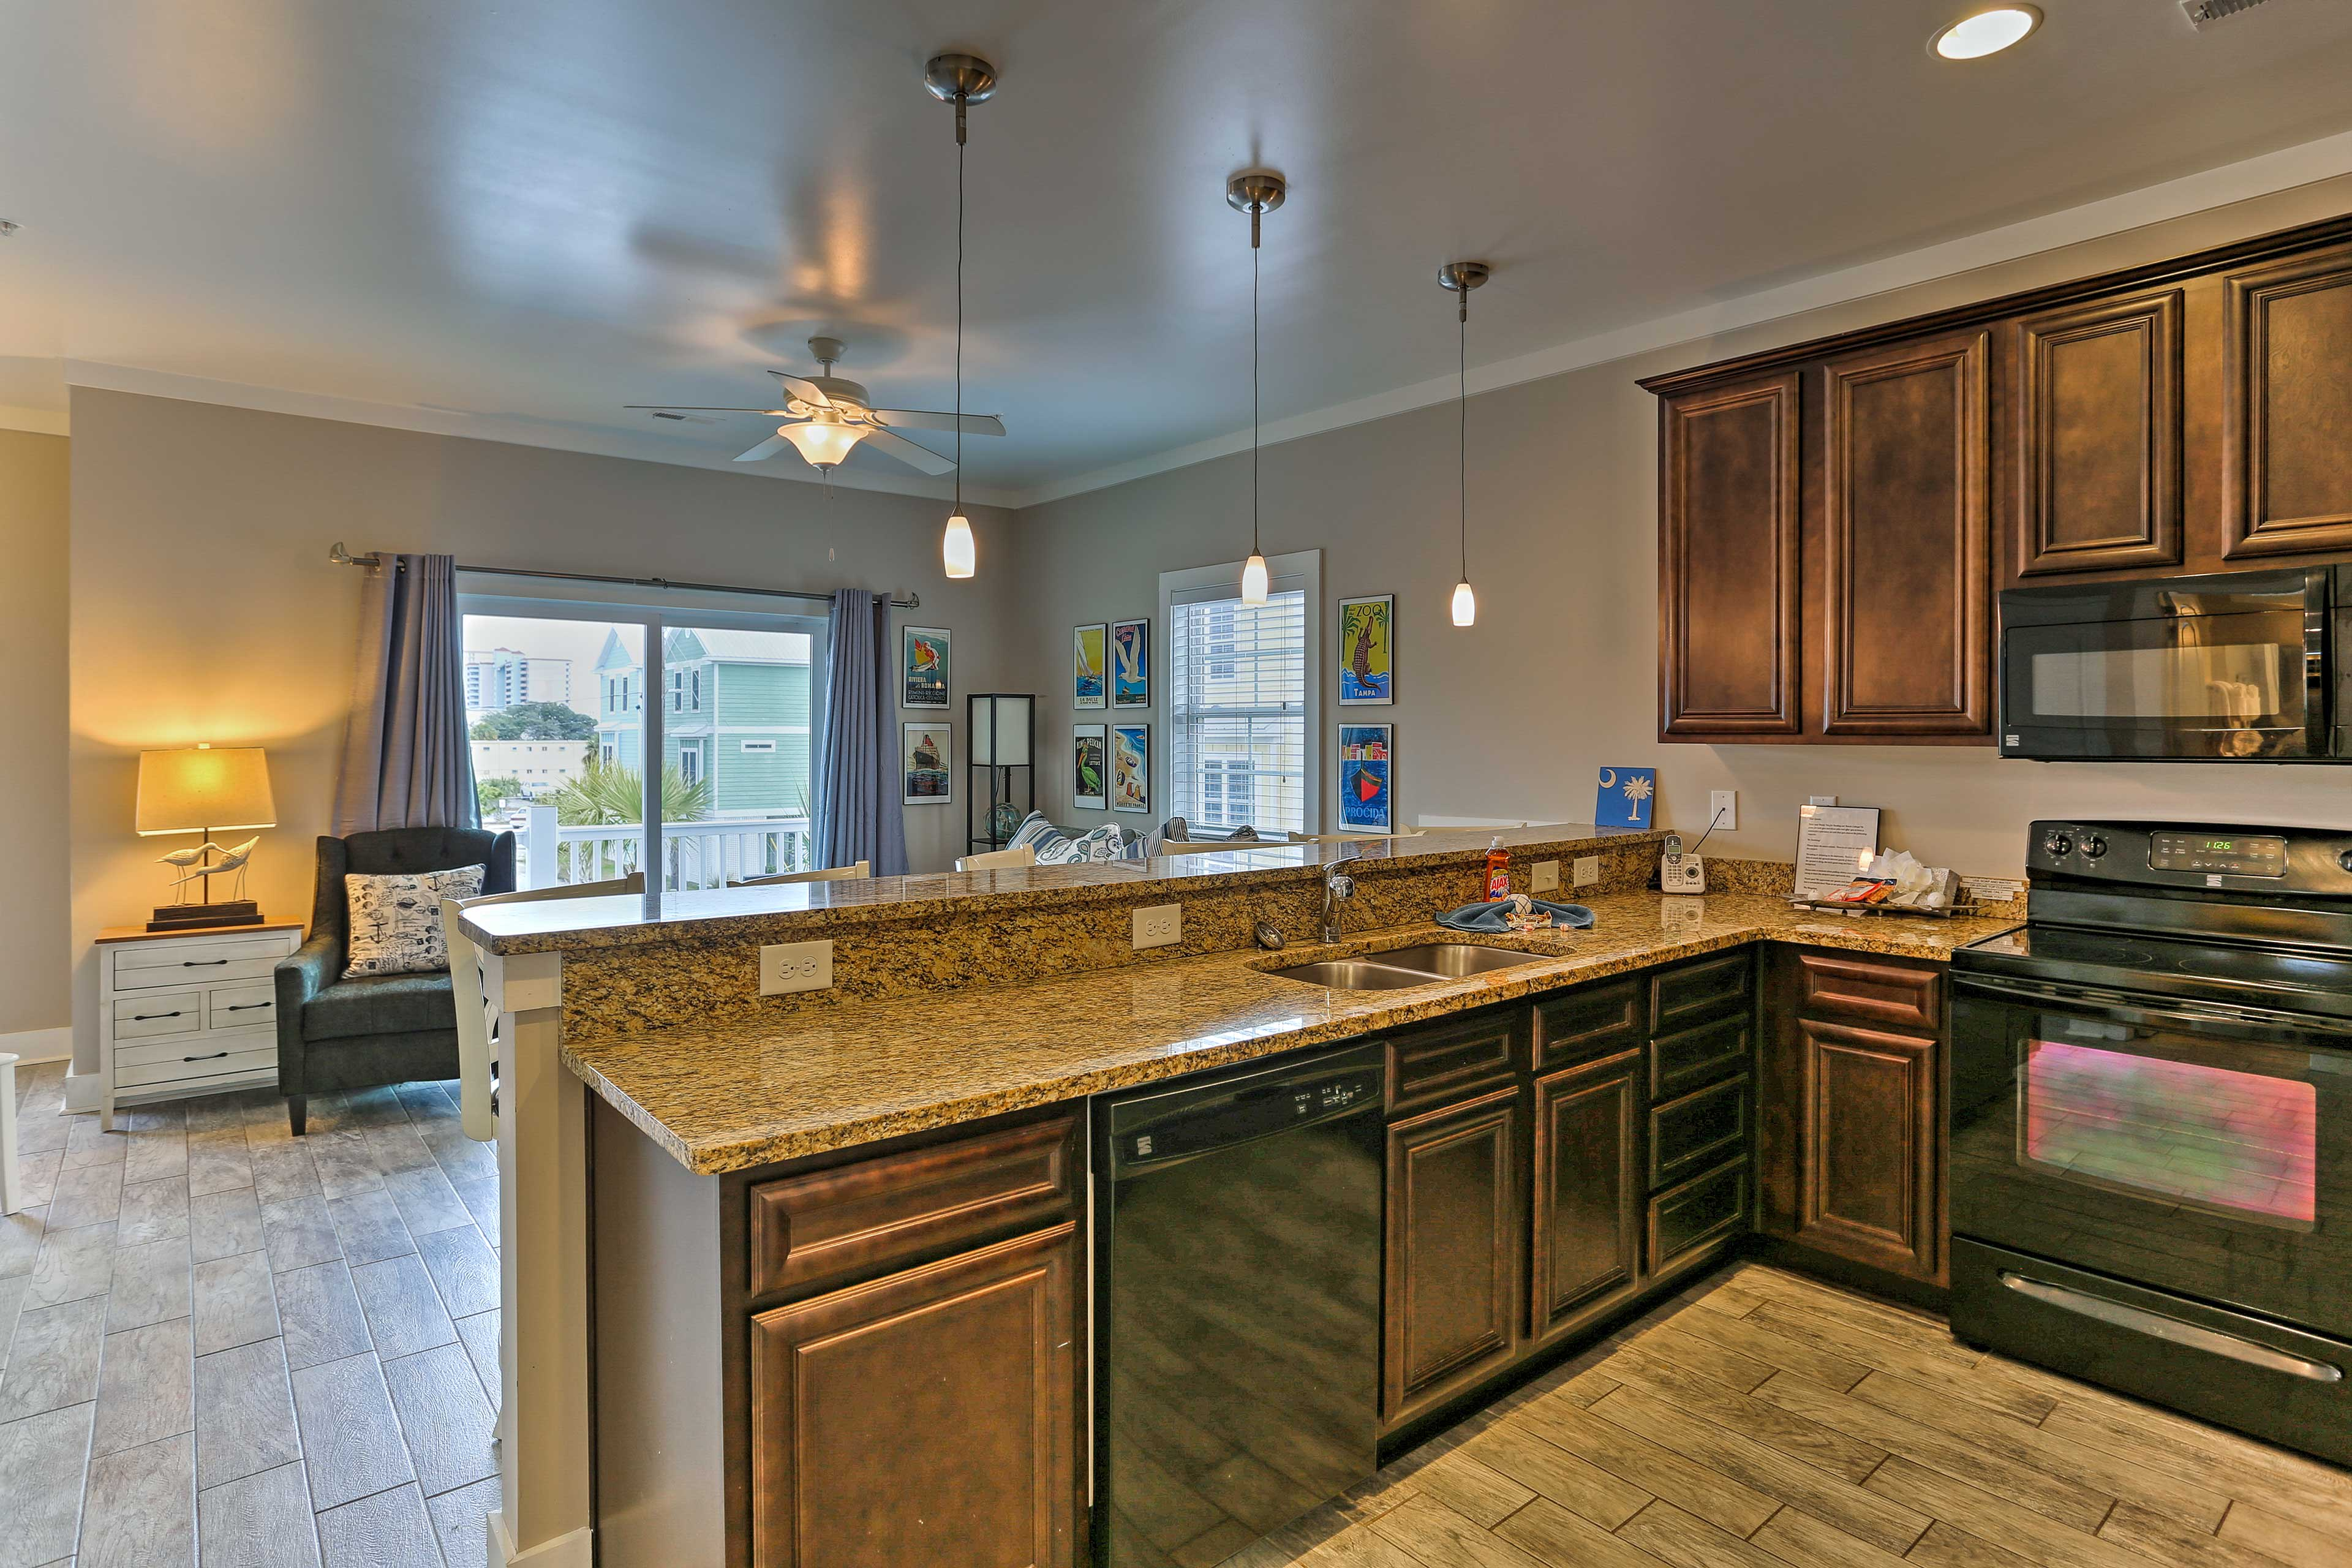 Prepare homemade feasts in the fully equipped kitchen!